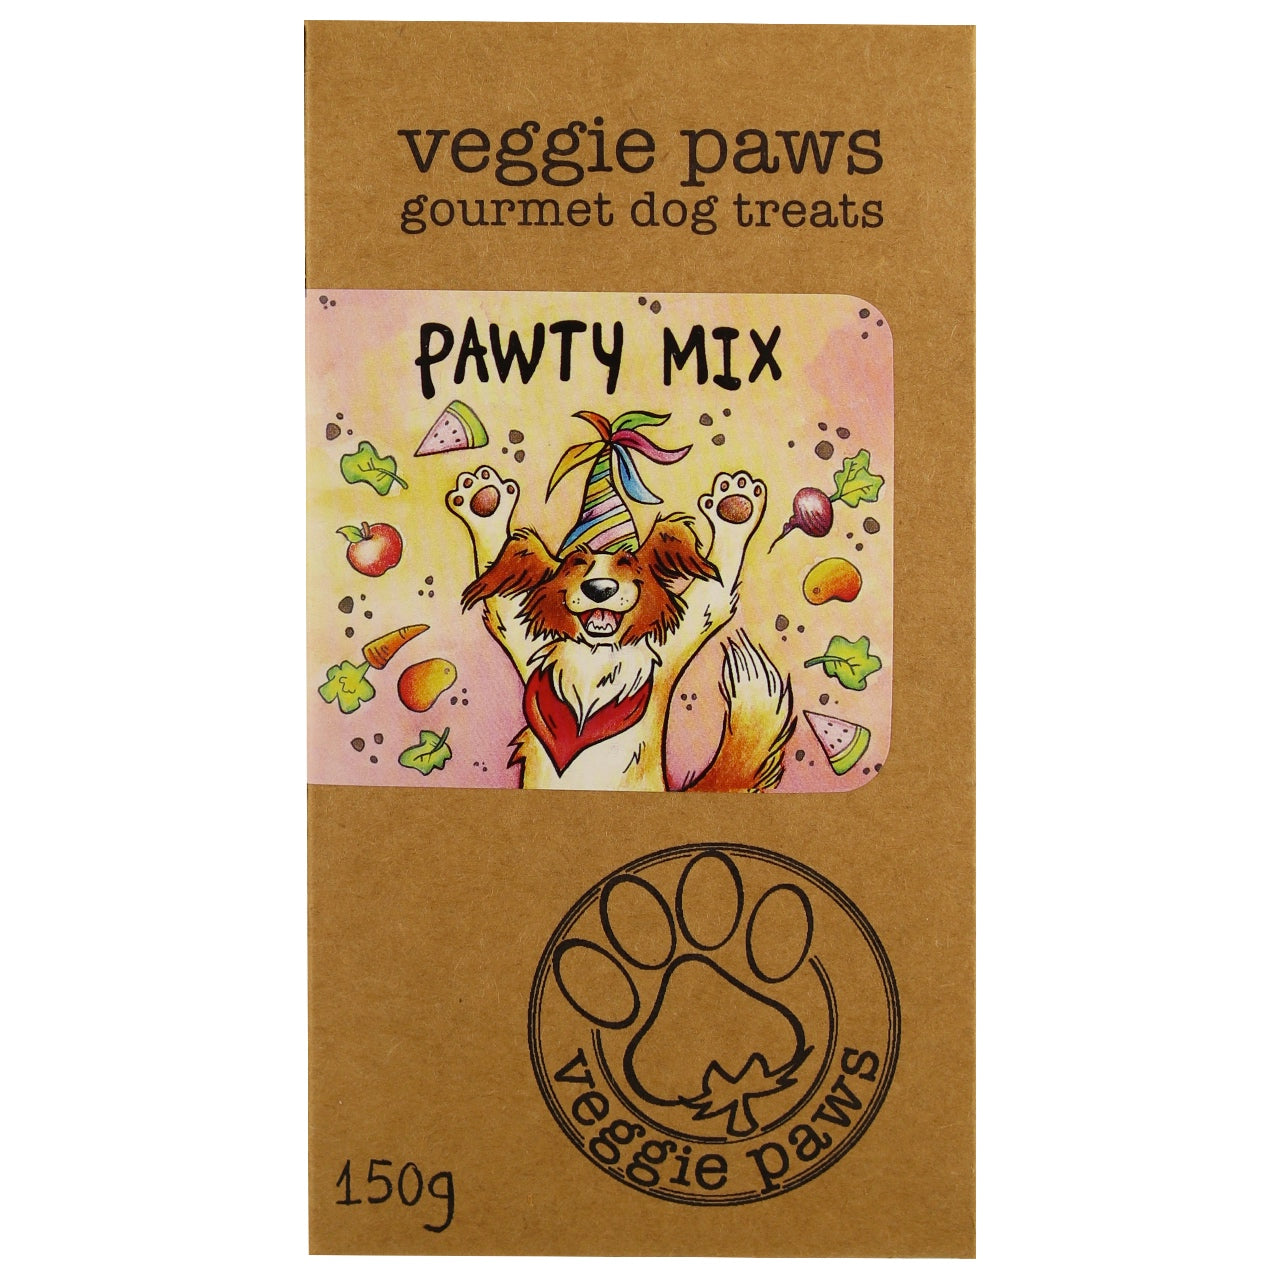 Veggie Paws Treat Pack -Pawty Mix